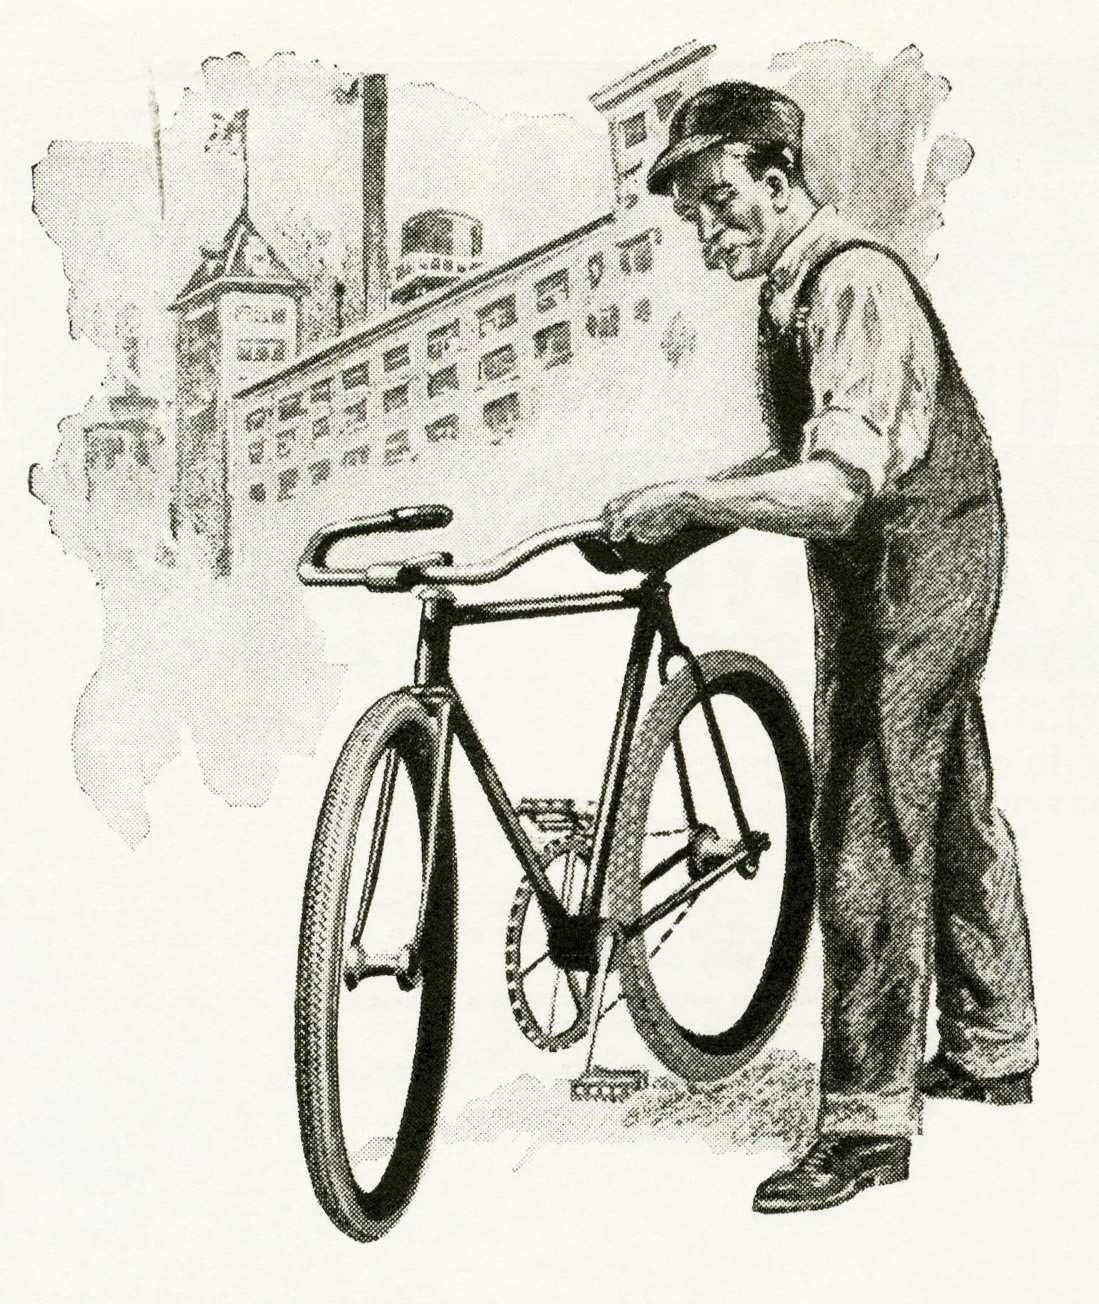 Man With Bicycle Vintage Image